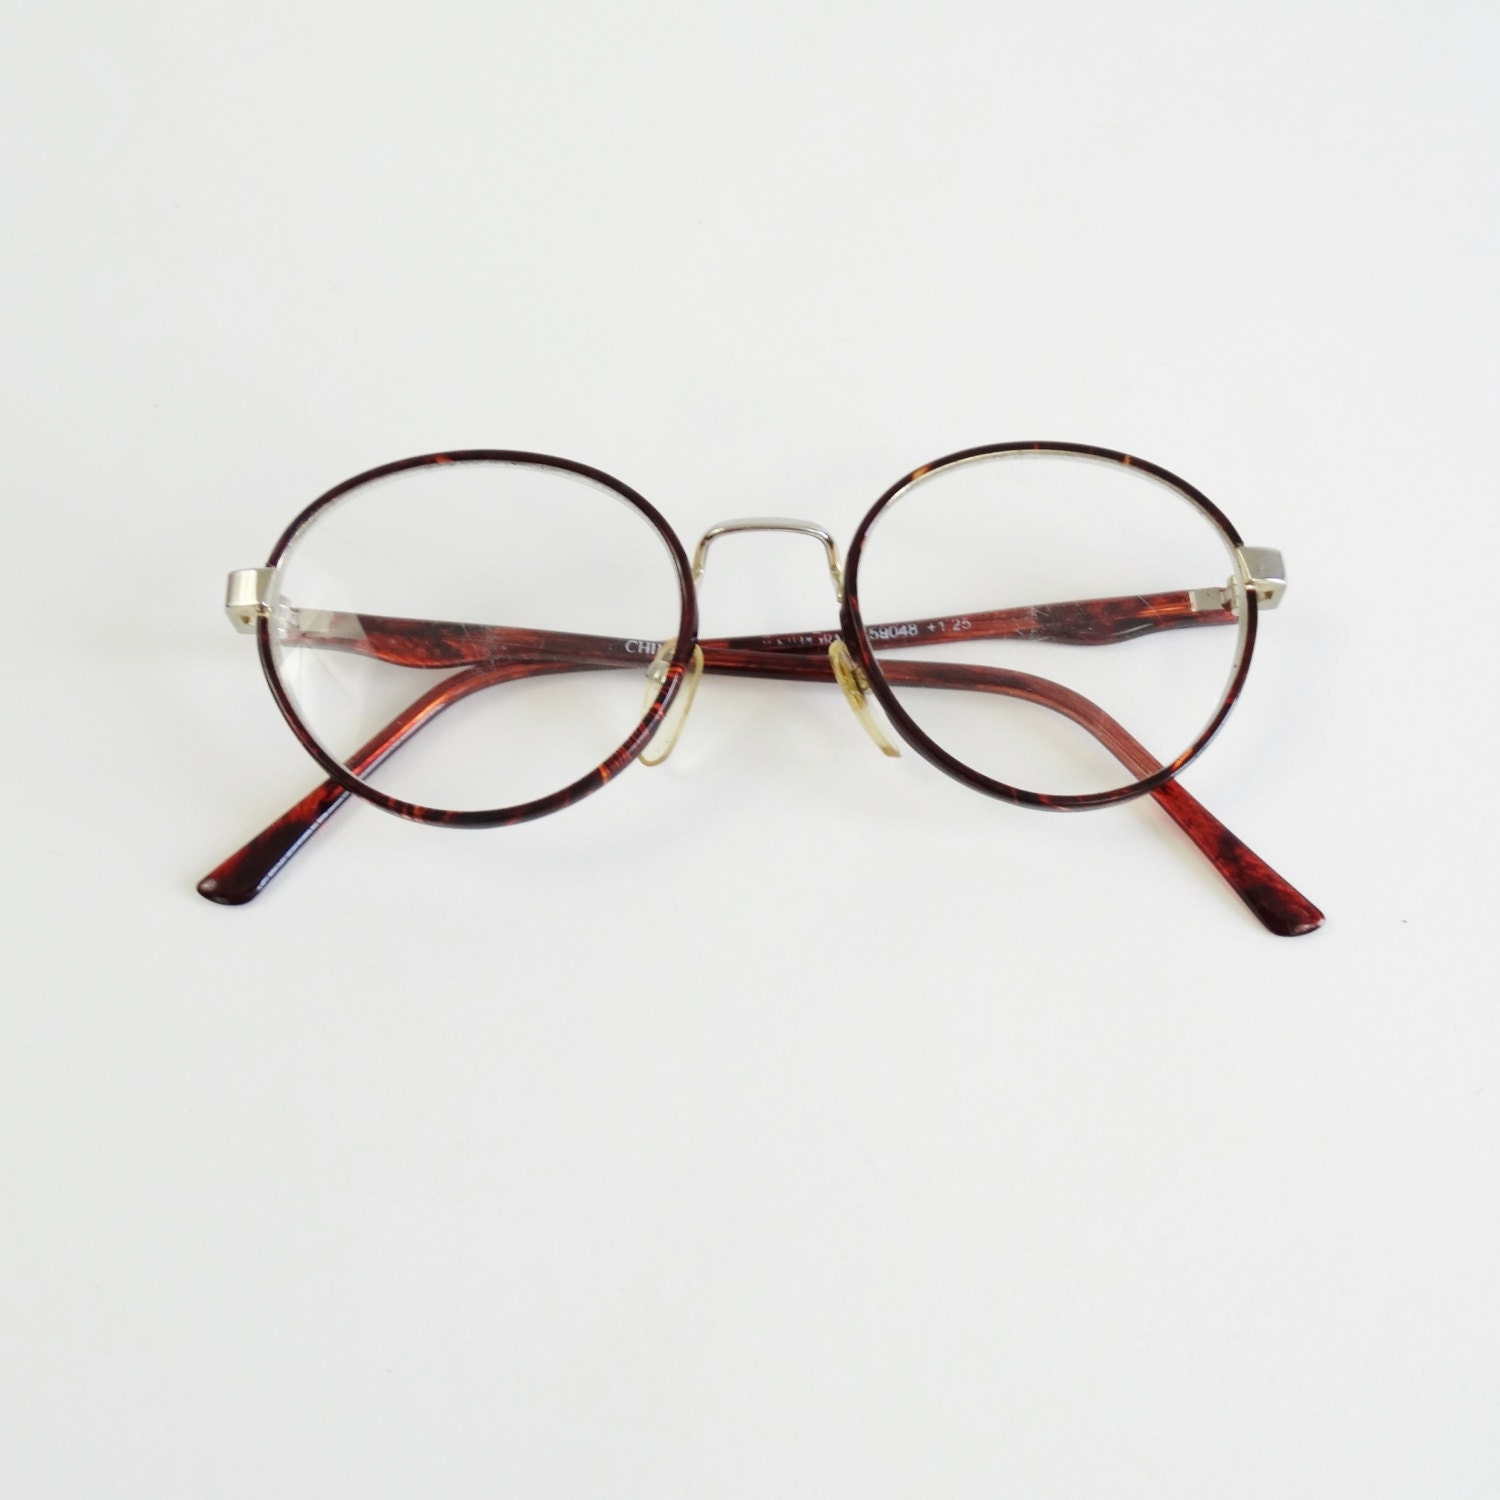 590bfce975 RESERVED 80S ROUND EYEGLASSES - VINTAGE 1980S CIRCLE GLASSES - PLASTIC THIN  FRAMES EYE WEAR - TORTOISE SHELL BROWN CLEAR - READING GLASSES on The Hunt